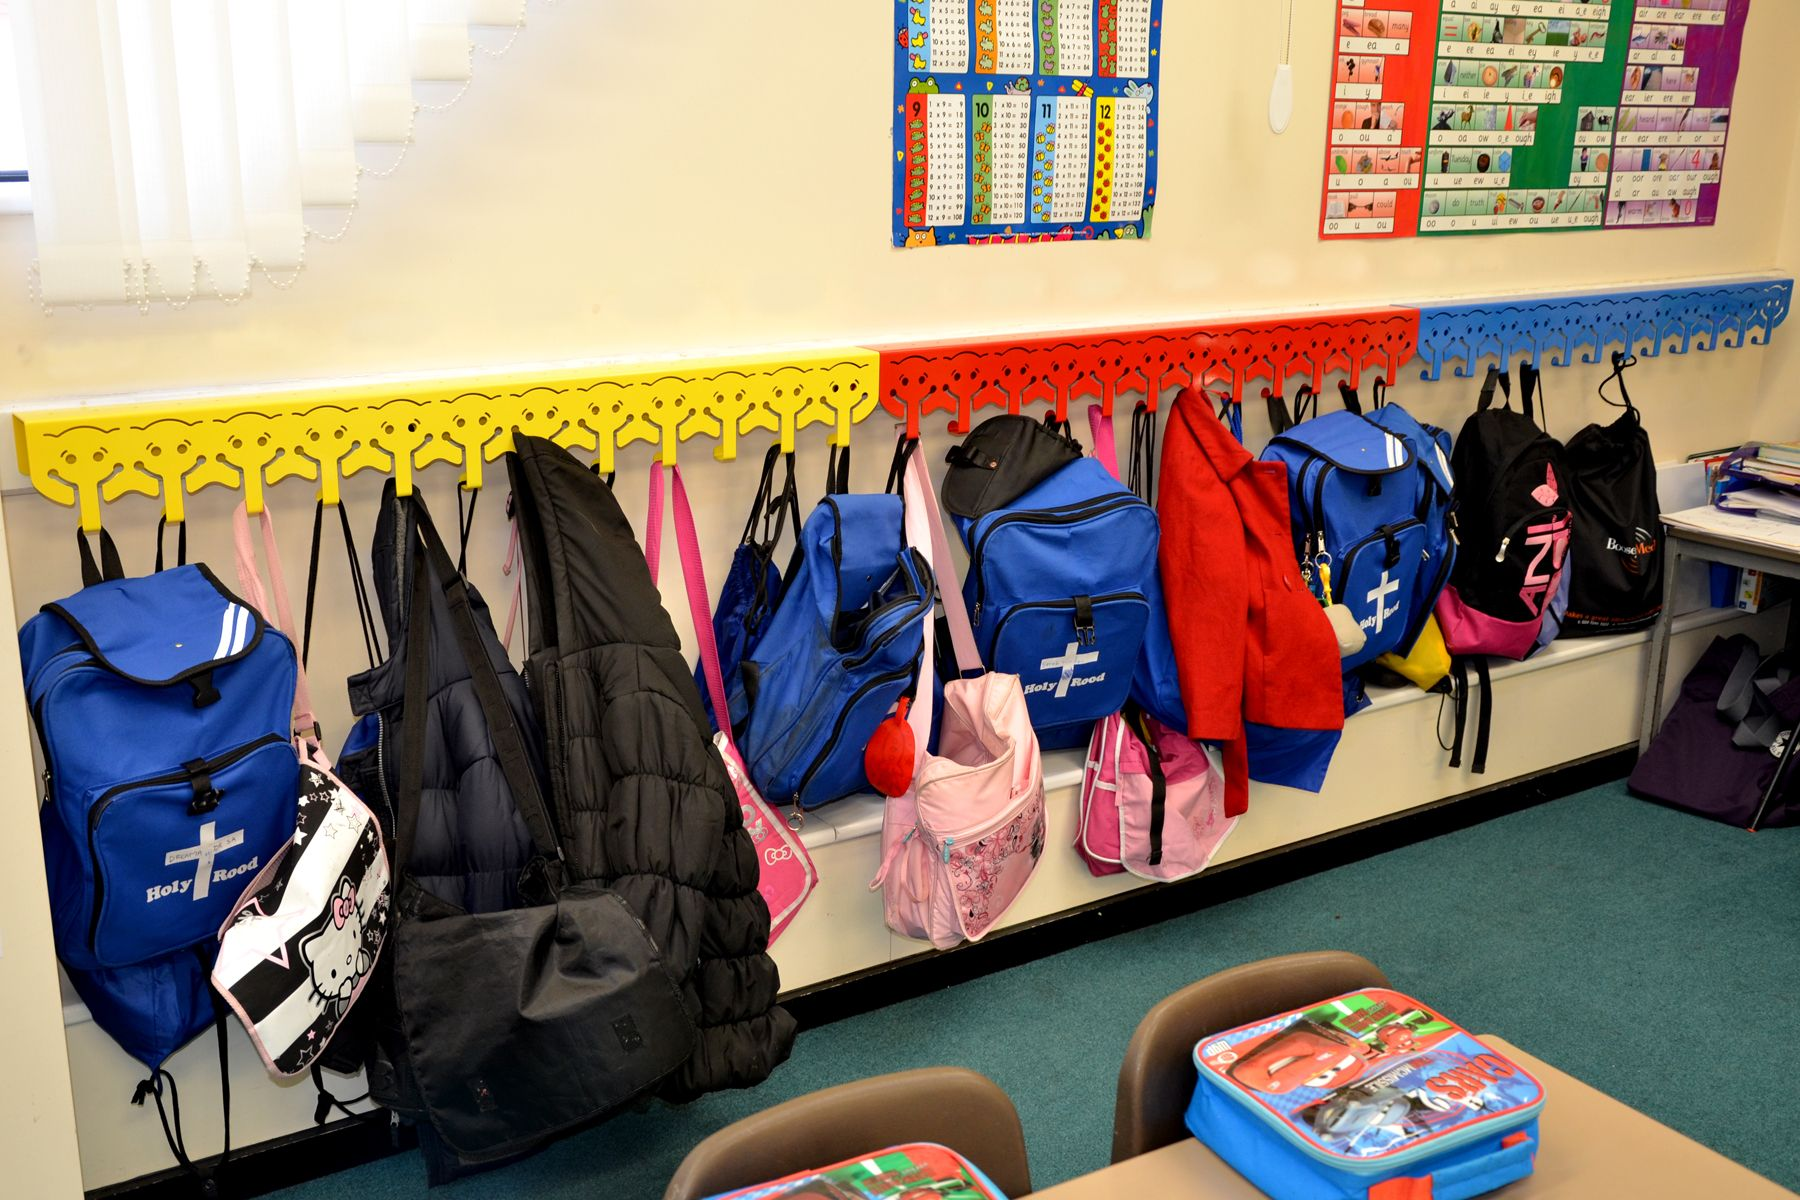 Hooks In The Classroom For Coats And Backpacks